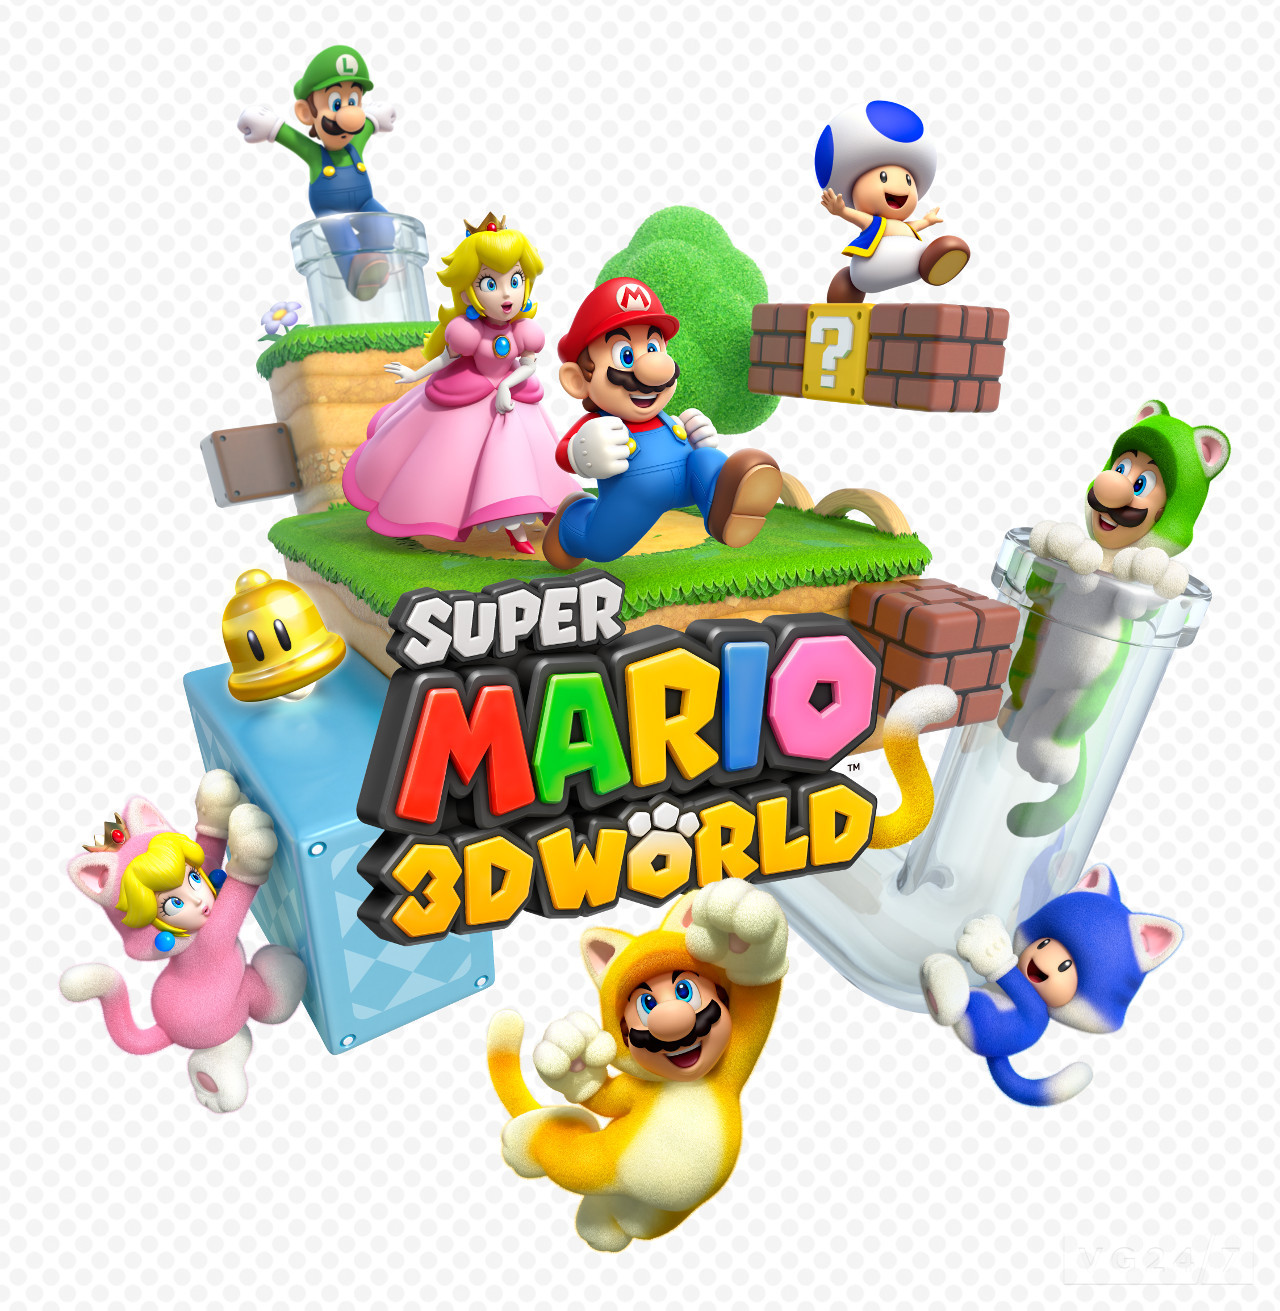 mario 3d world out december on wii u screens